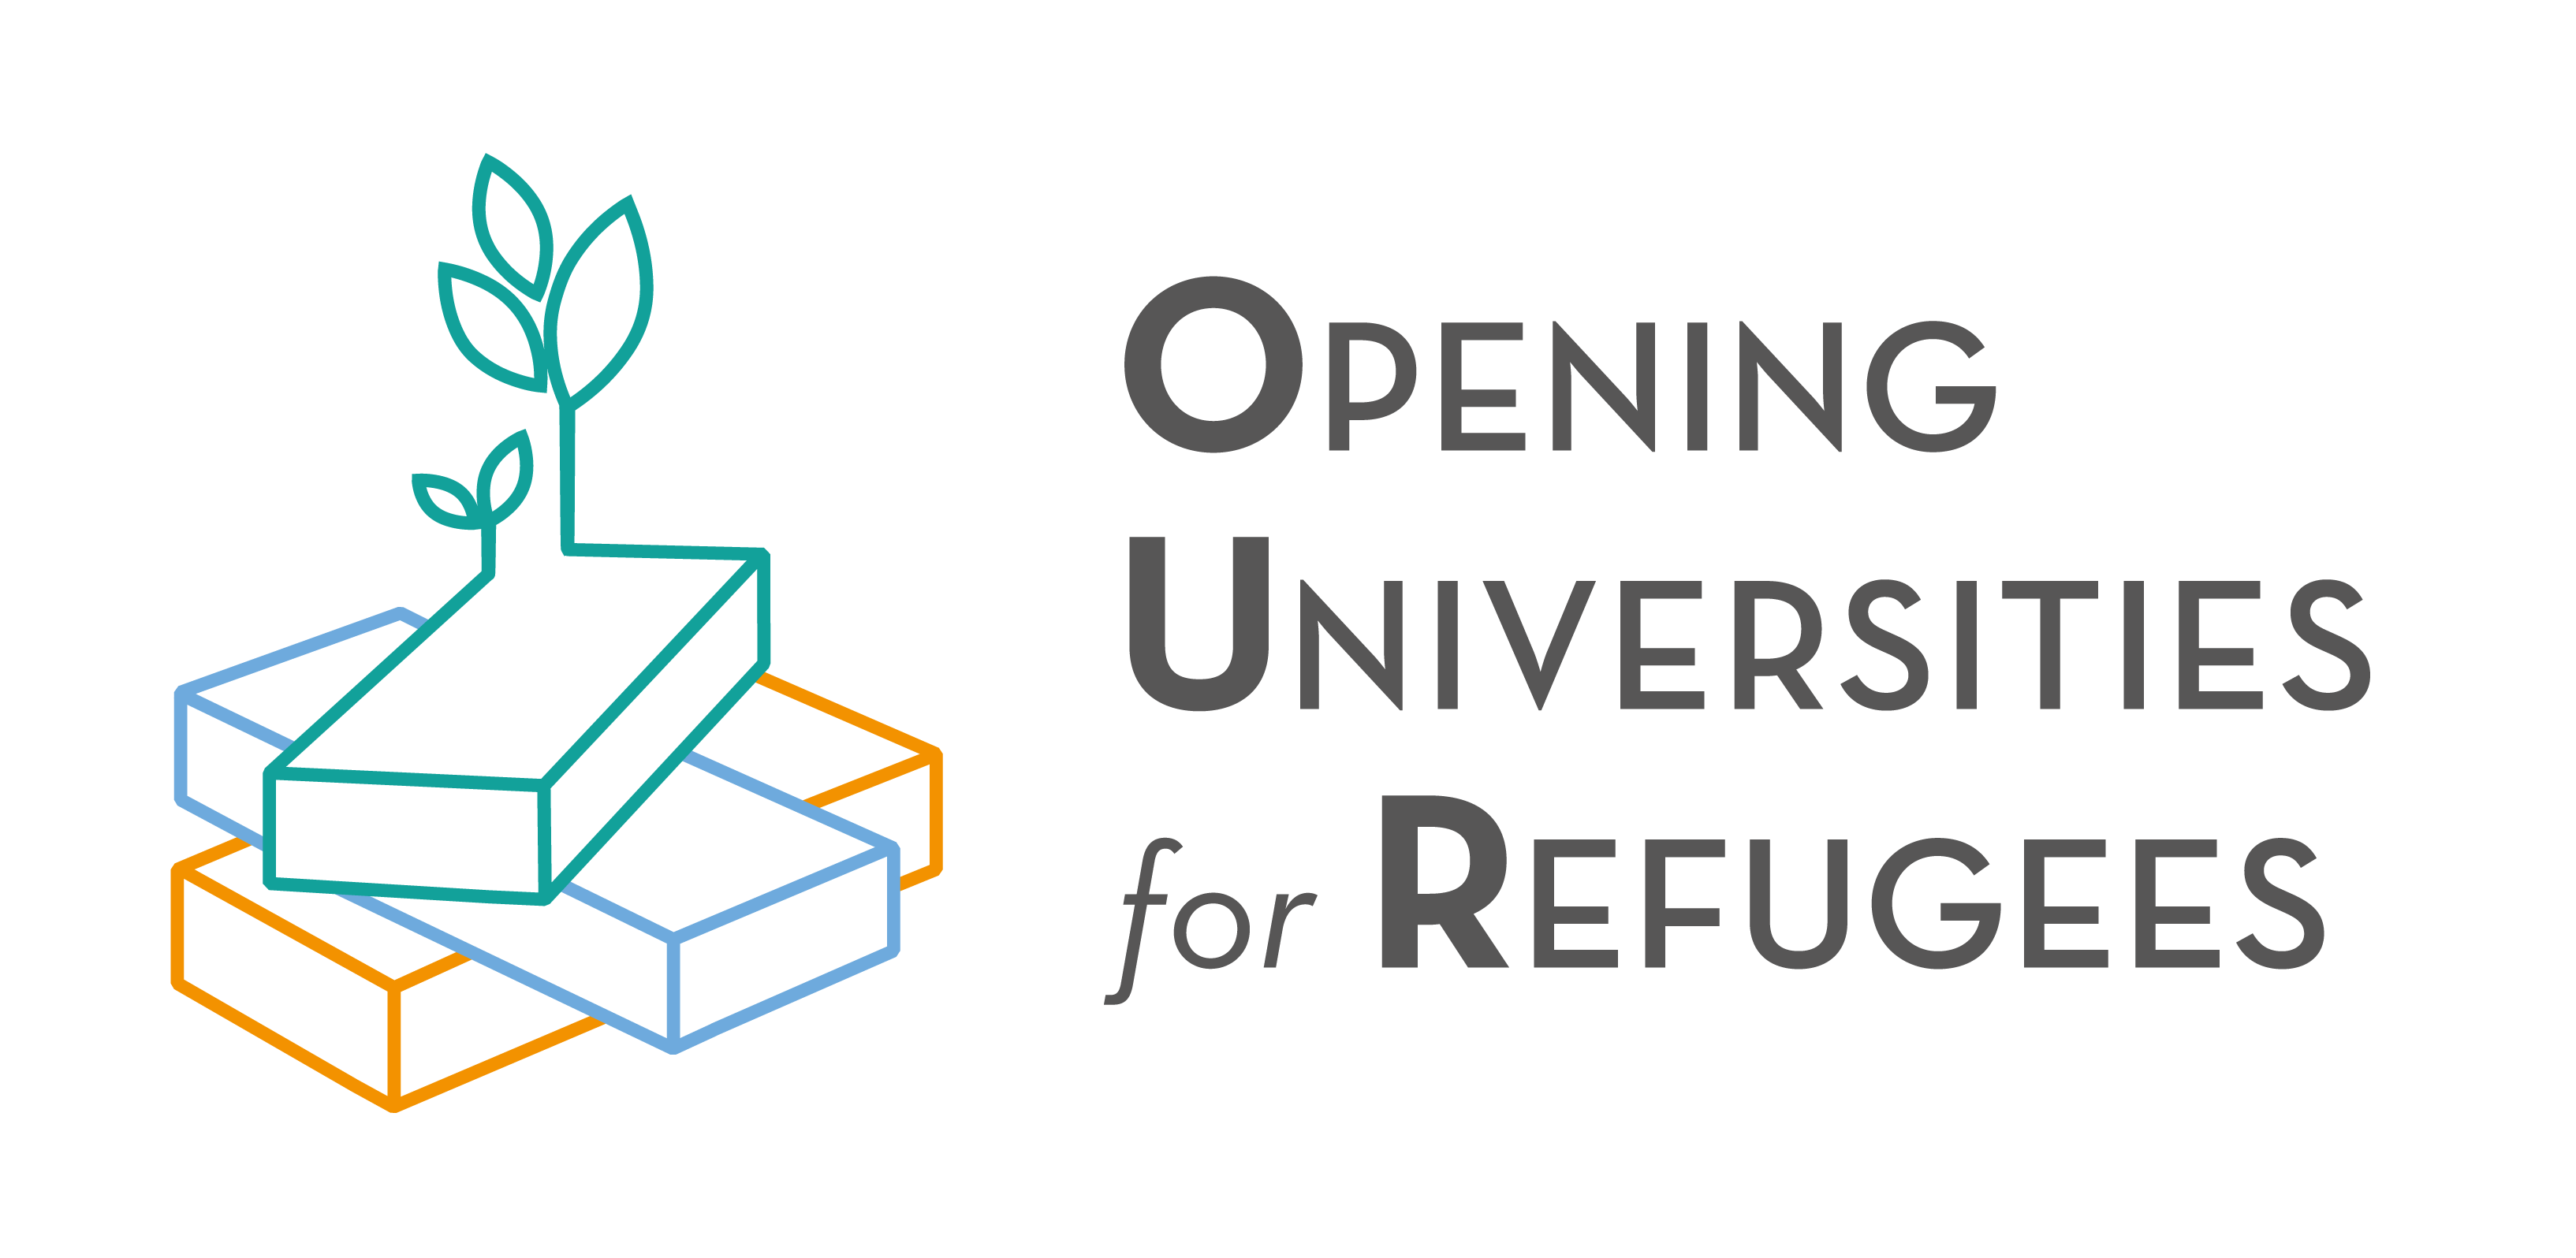 Opening Universities for Refugees